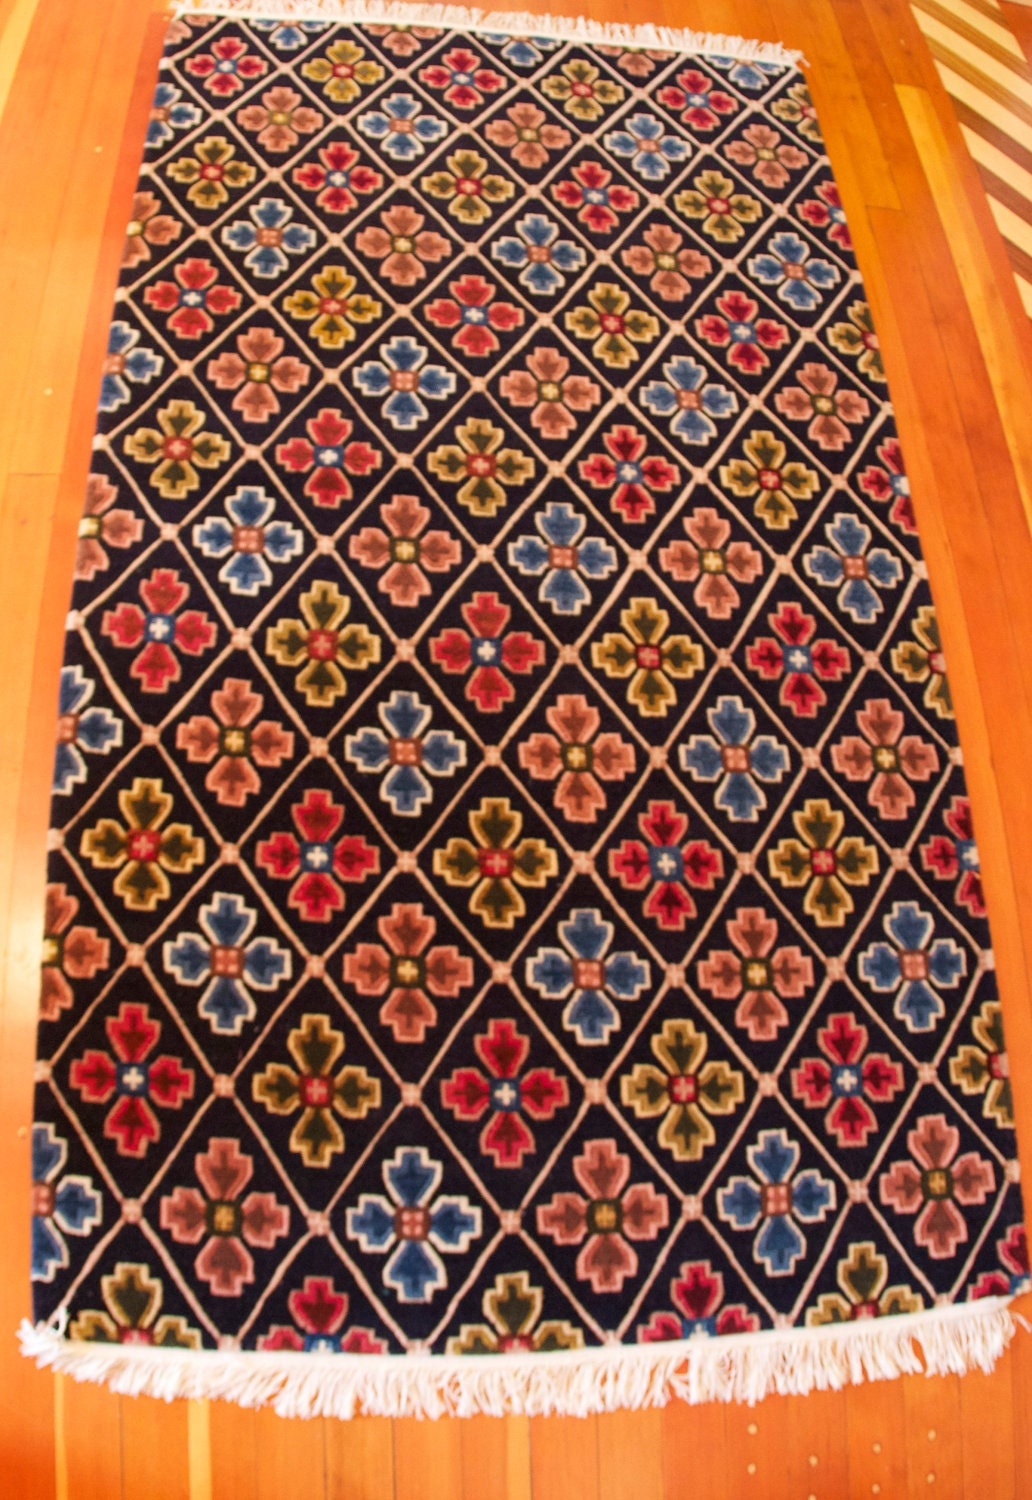 Hand-knotted, hand-dyed Tibetan Wool Rug - Double Dorje Design